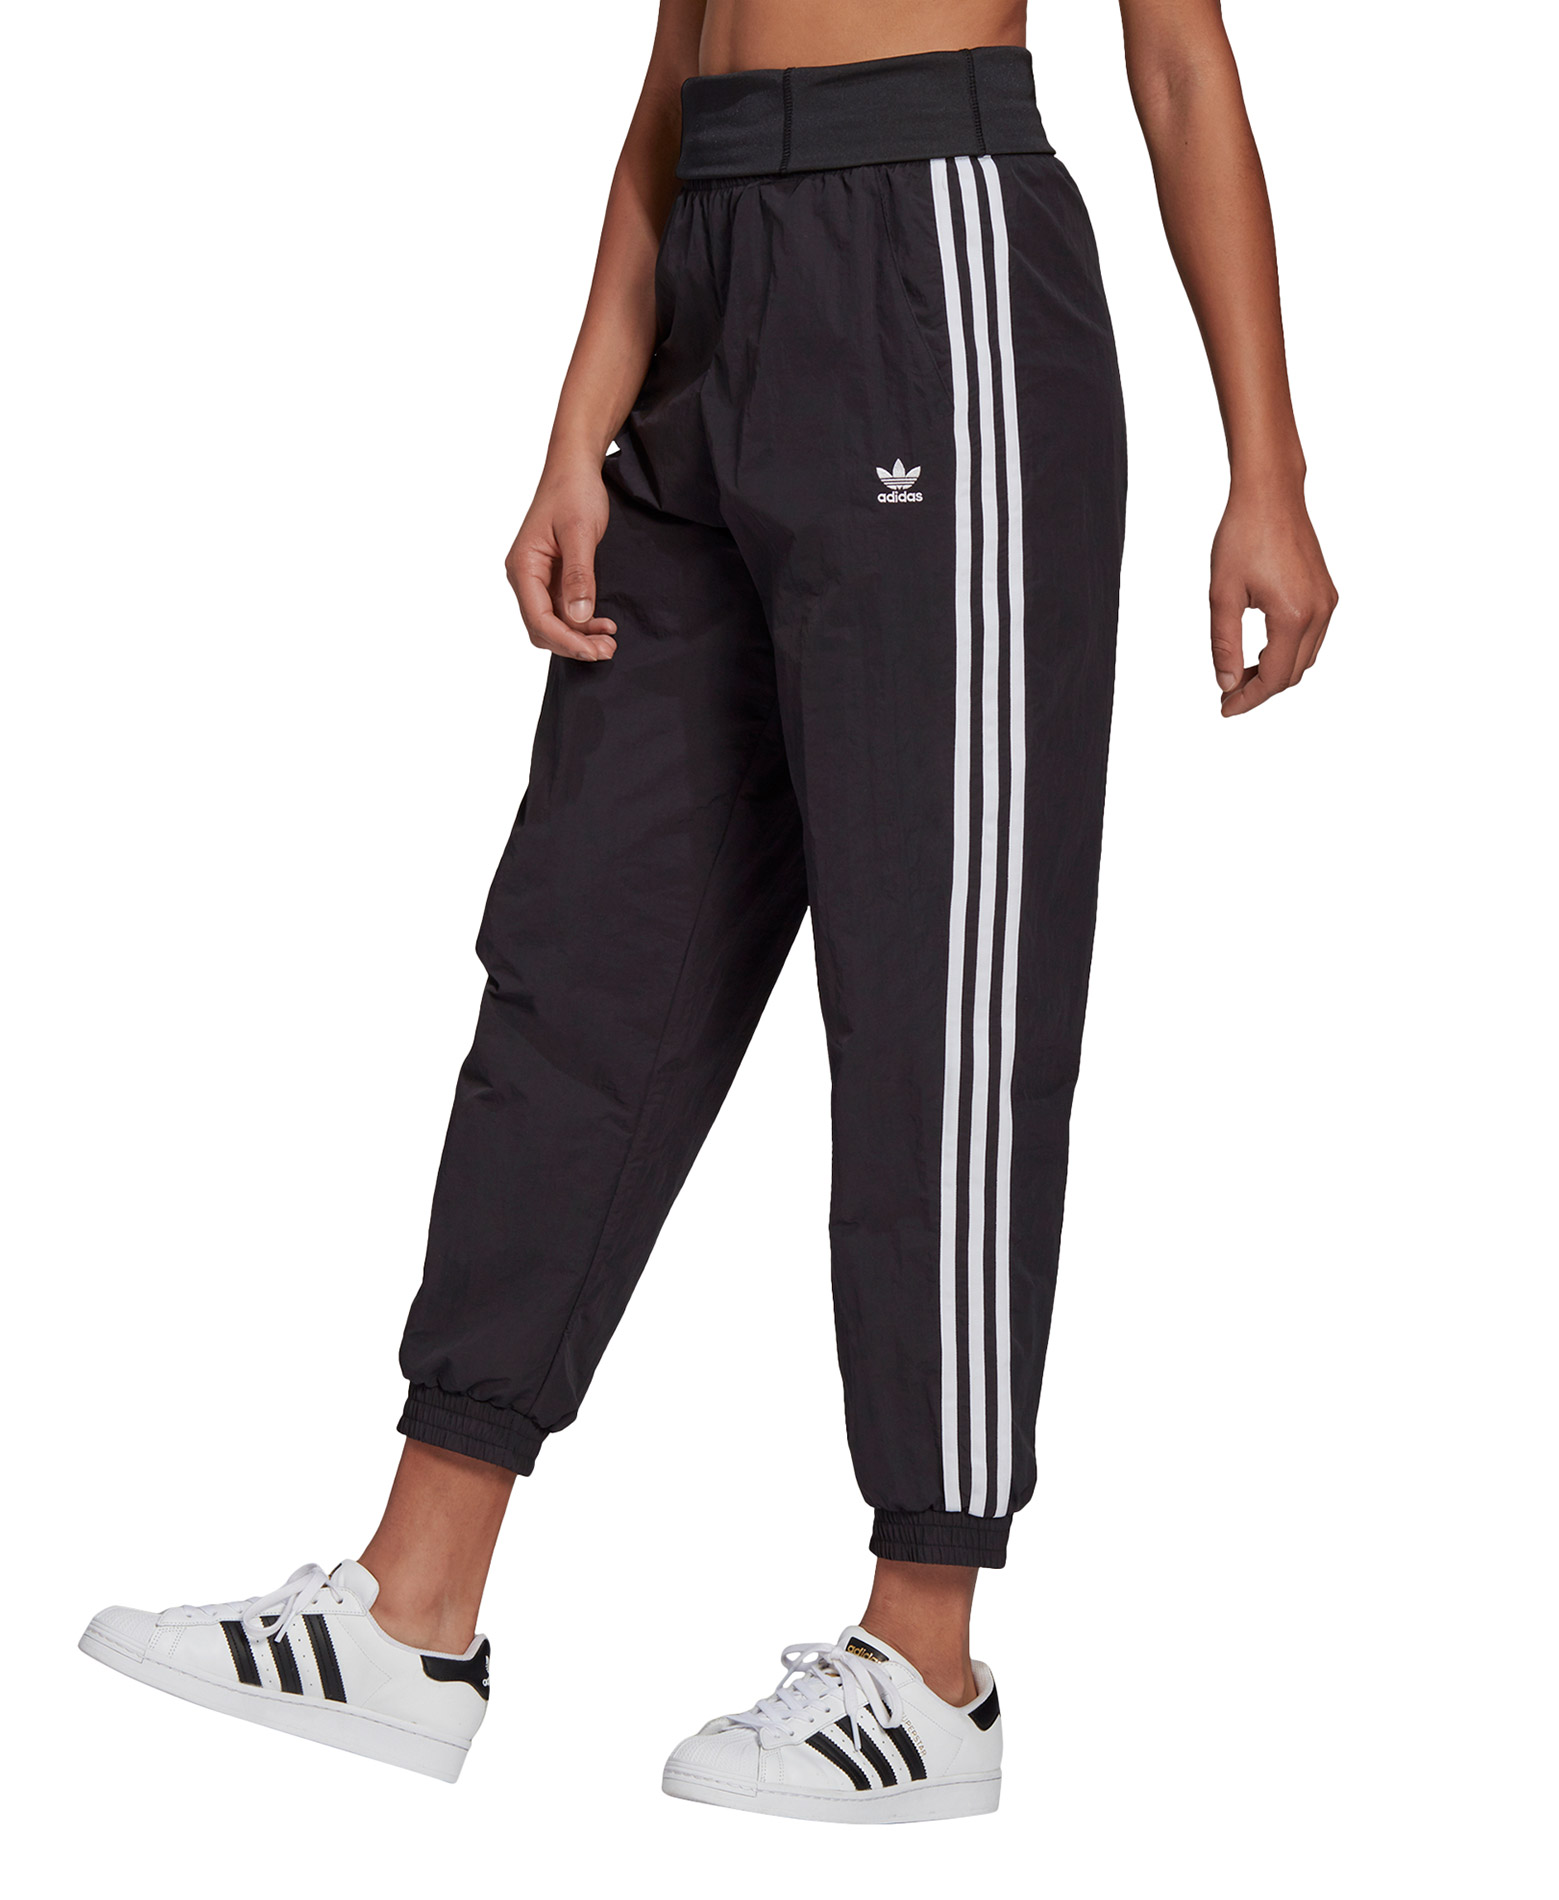 adidas Originals ADICOLOR CLASSICS DOUBLE-WAISTBAND FASHION TRACKSUIT BOTTOMS GN2868 Μαύρο